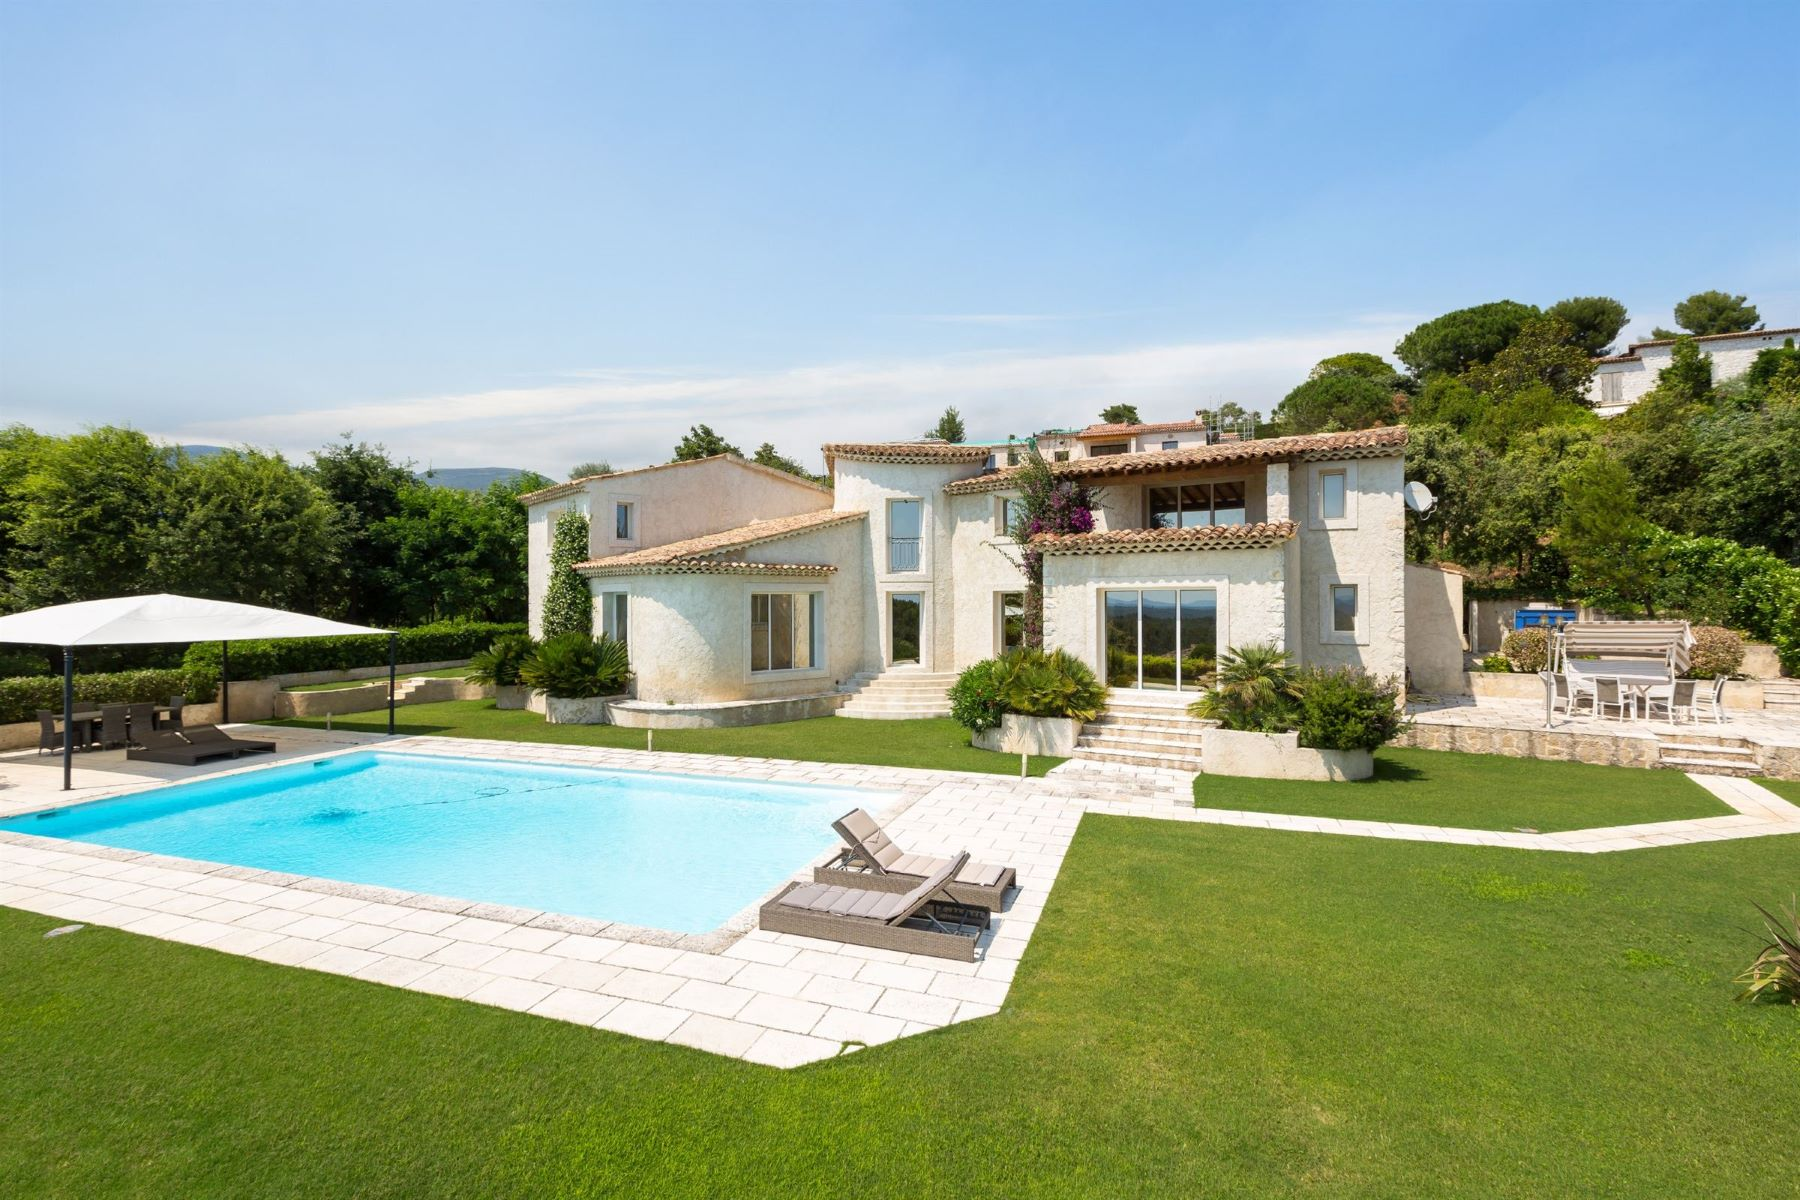 Single Family Homes por un Venta en Panoramic sea views in a prestigious Domain in Saint-Paul-de-Vence Other Provence-Alpes-Cote D'Azur, Provincia - Alpes - Costa Azul 06570 Francia